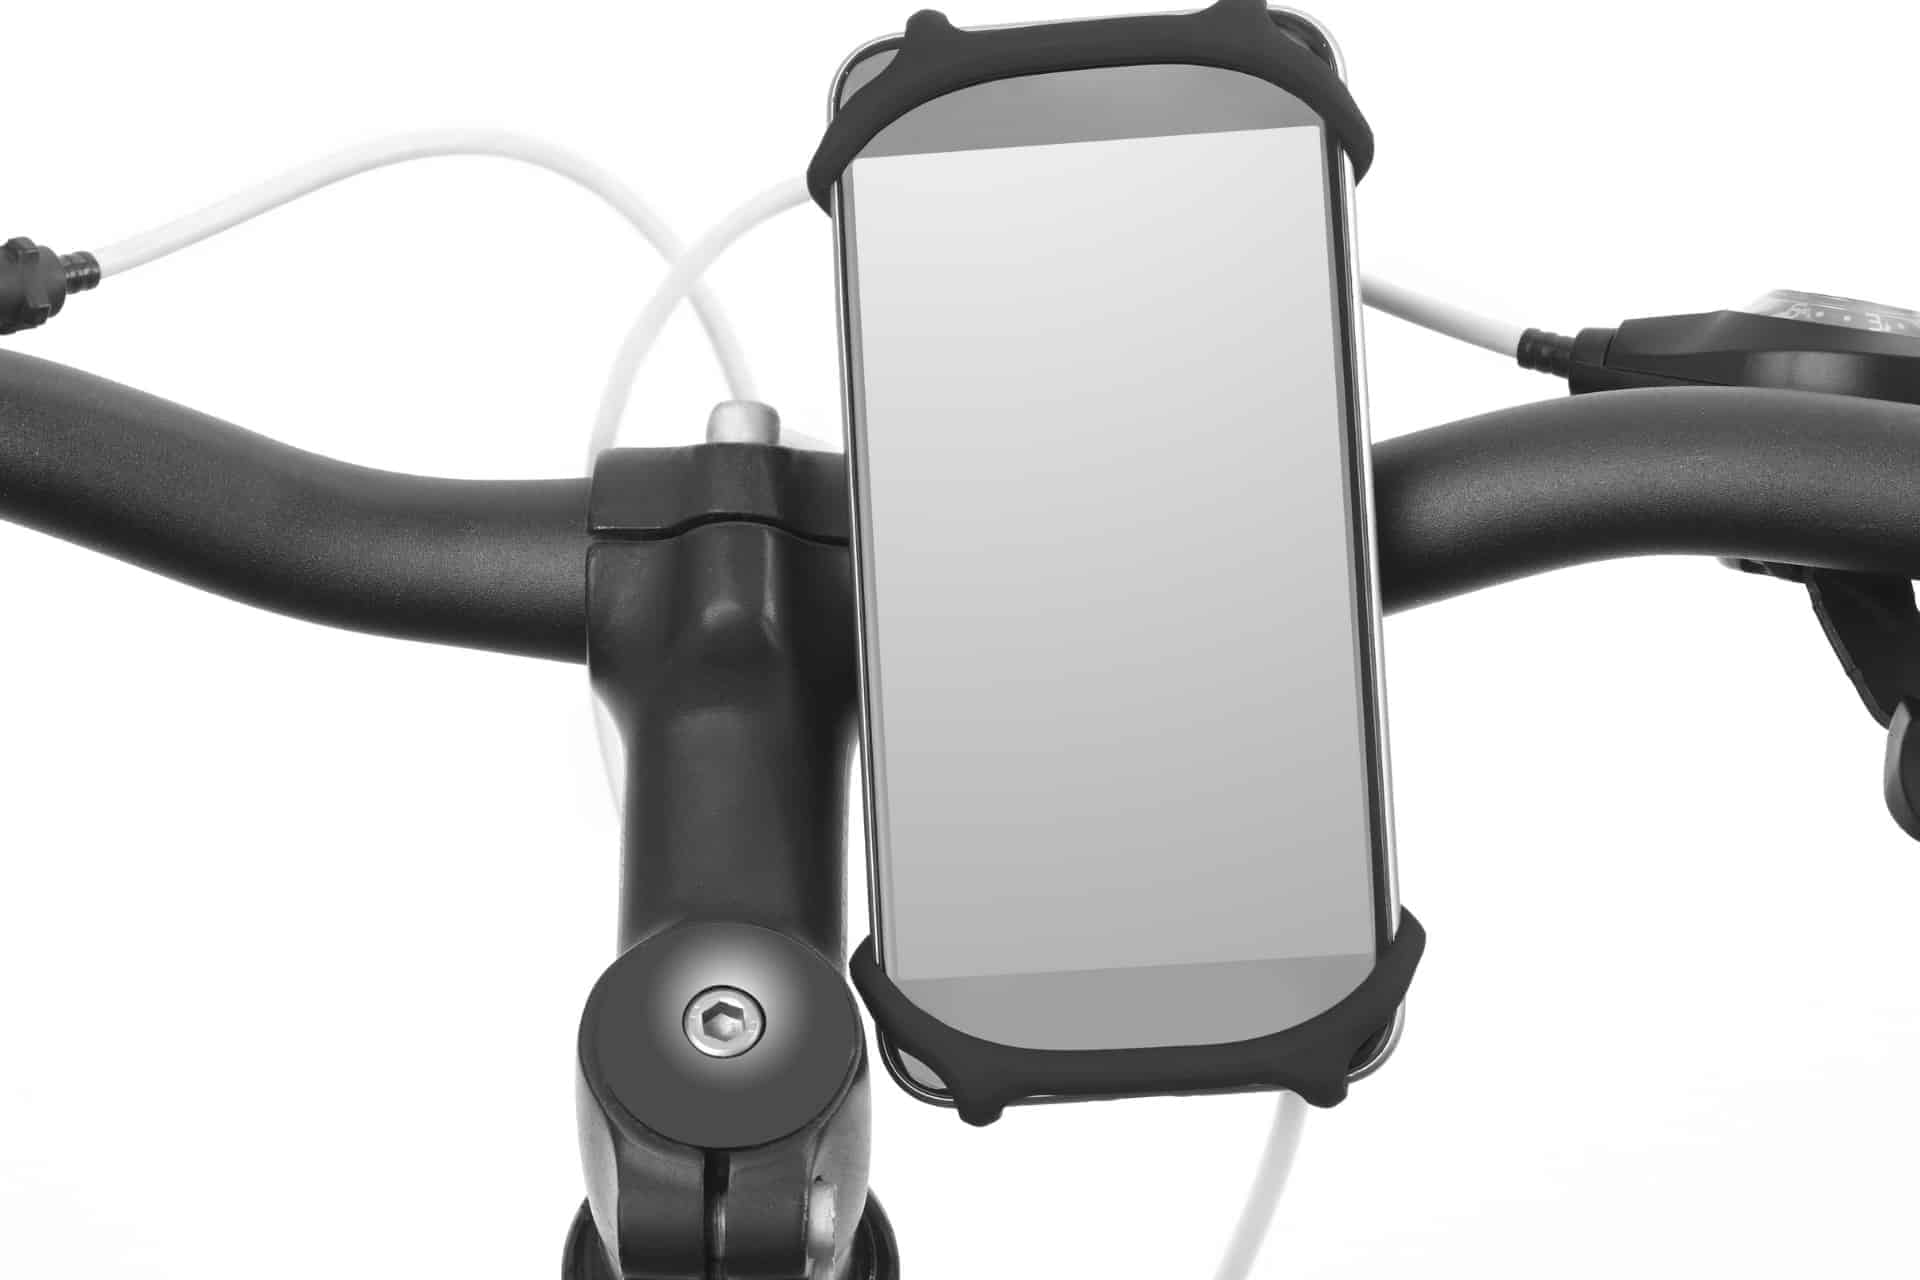 There are many different types of bike phone mounts to choose from.